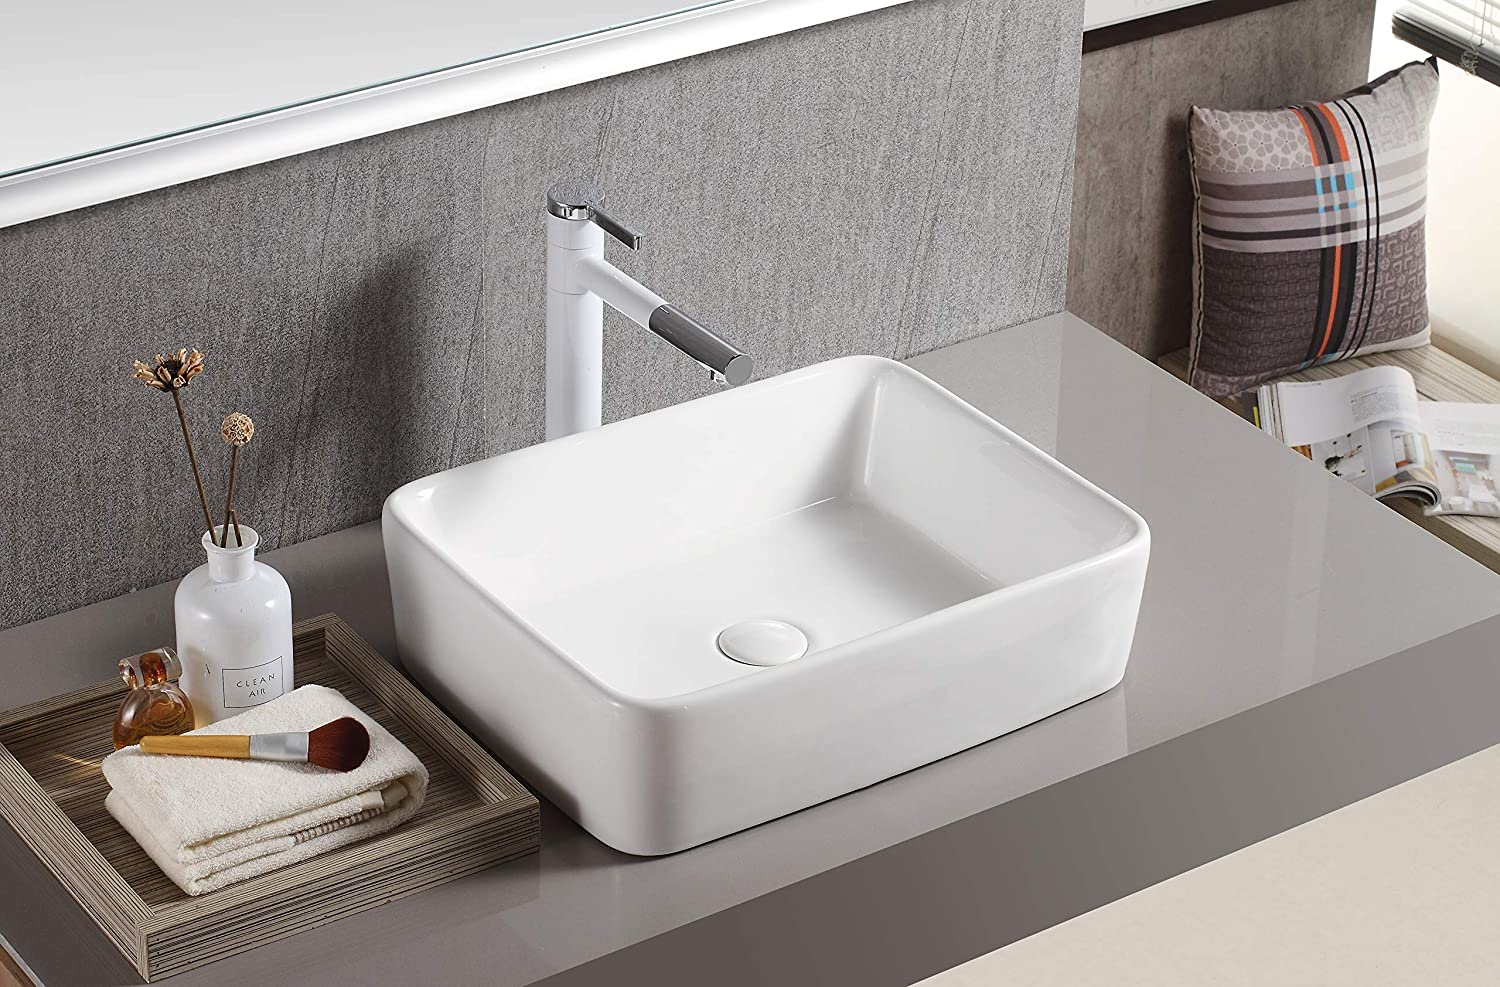 White 19.2 x 11.9 x 5 Inches Elanti Collection EC9848 Sink Curved Rectangular